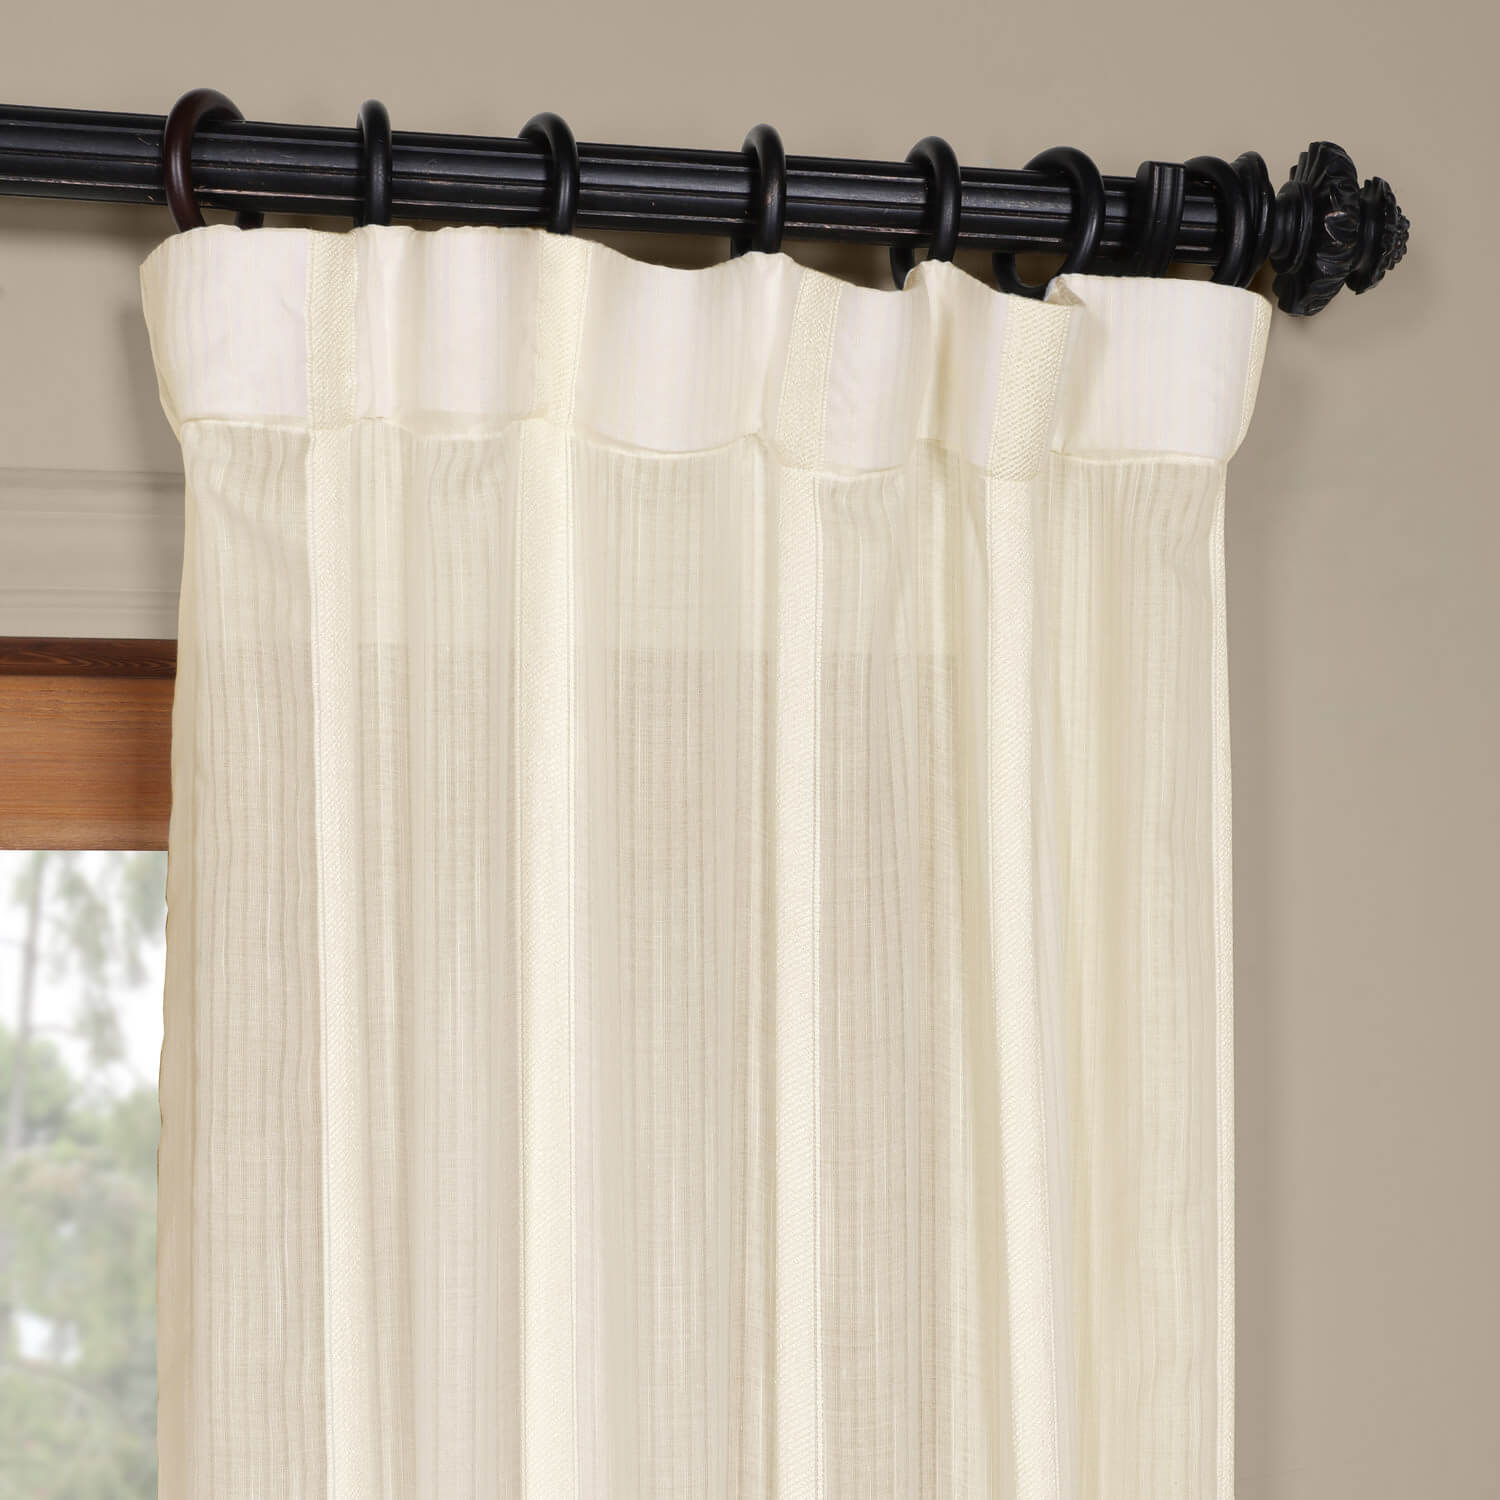 Buy Antigua Off White Striped Linen Sheer Curtain